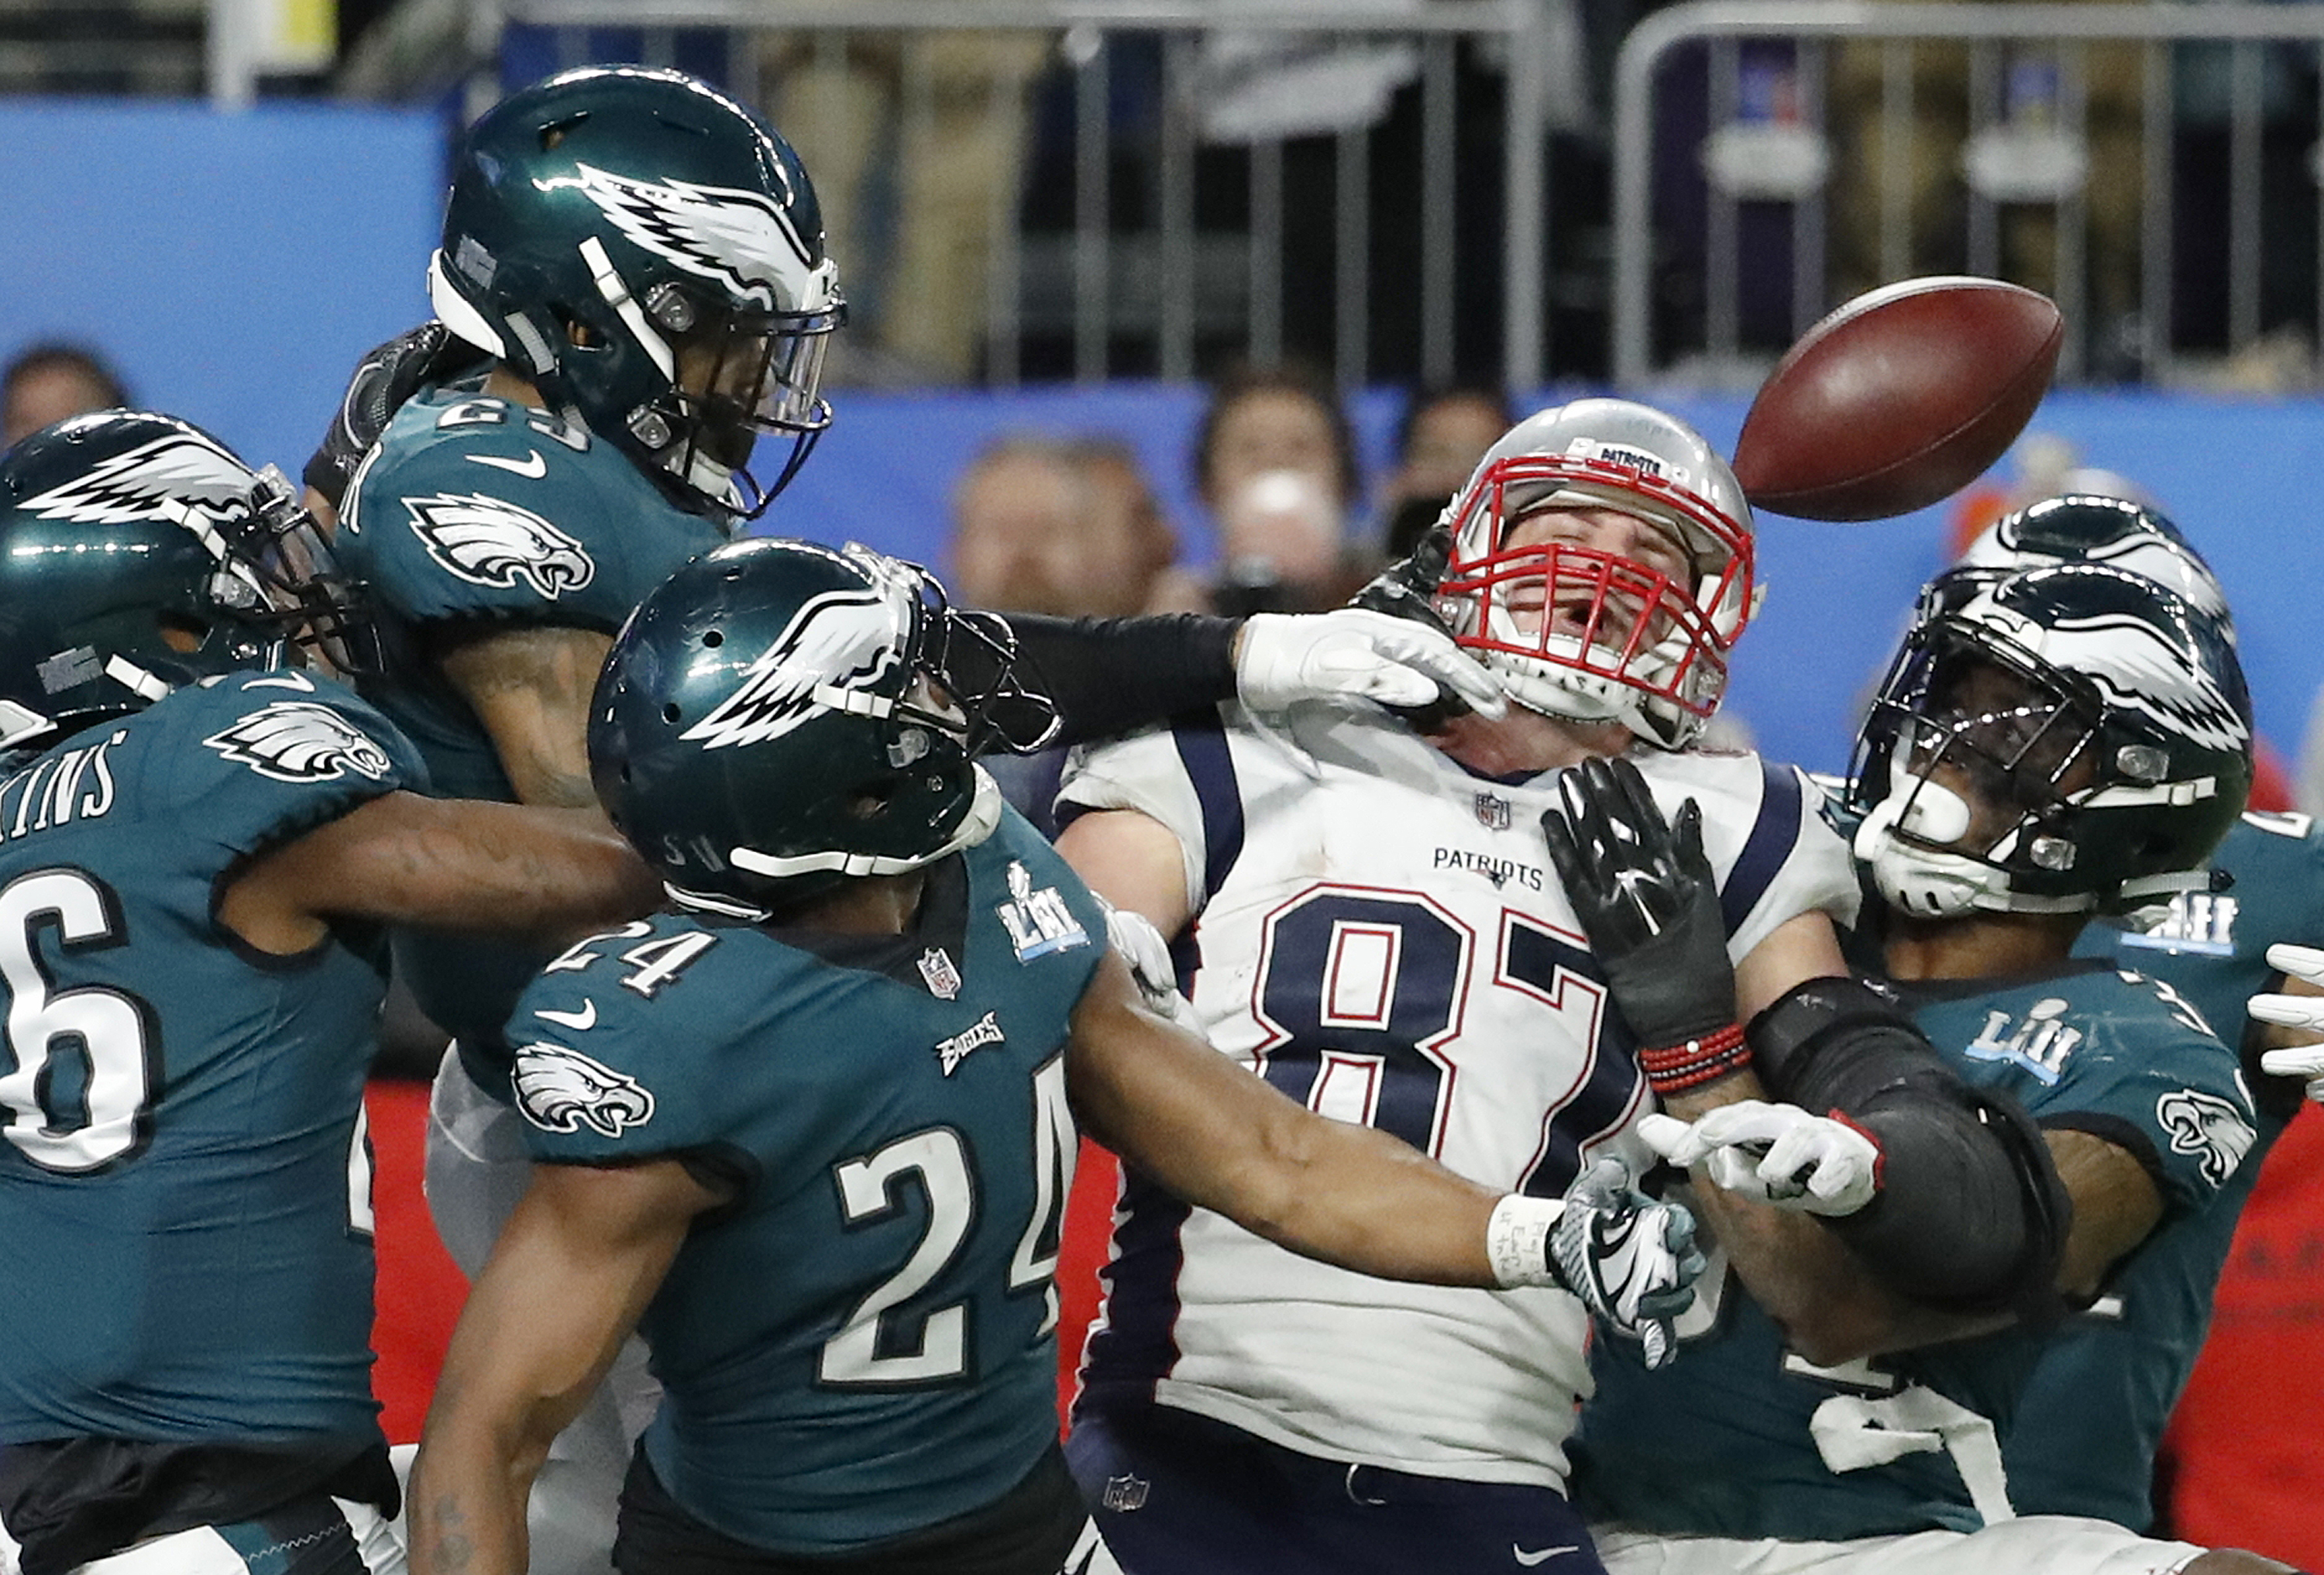 <div class='meta'><div class='origin-logo' data-origin='AP'></div><span class='caption-text' data-credit='AP Photo/Matt York'>New England Patriots' Rob Gronkowski (87) cannot catch a pass during the second half of the NFL Super Bowl 52 football game against the Philadelphia Eagles Sunday, Feb. 4, 2018.</span></div>